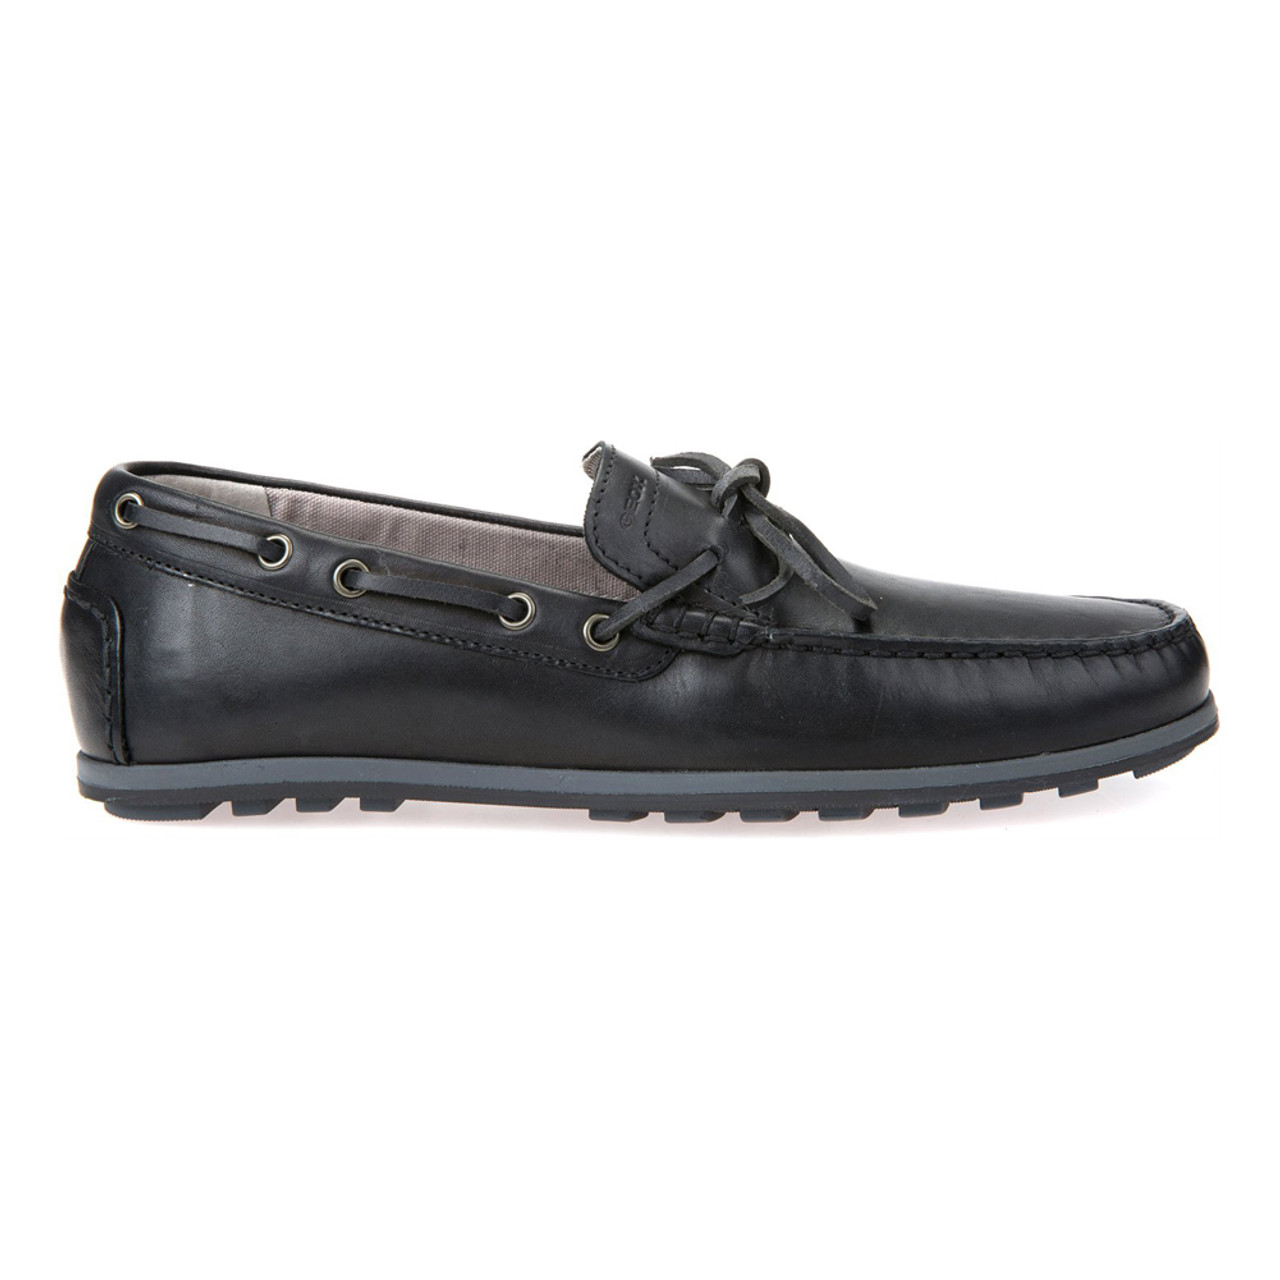 86c08b0674b2a Geox Men's Mirvin Moccasin - Black | Discount Geox Mens Shoes & More ...